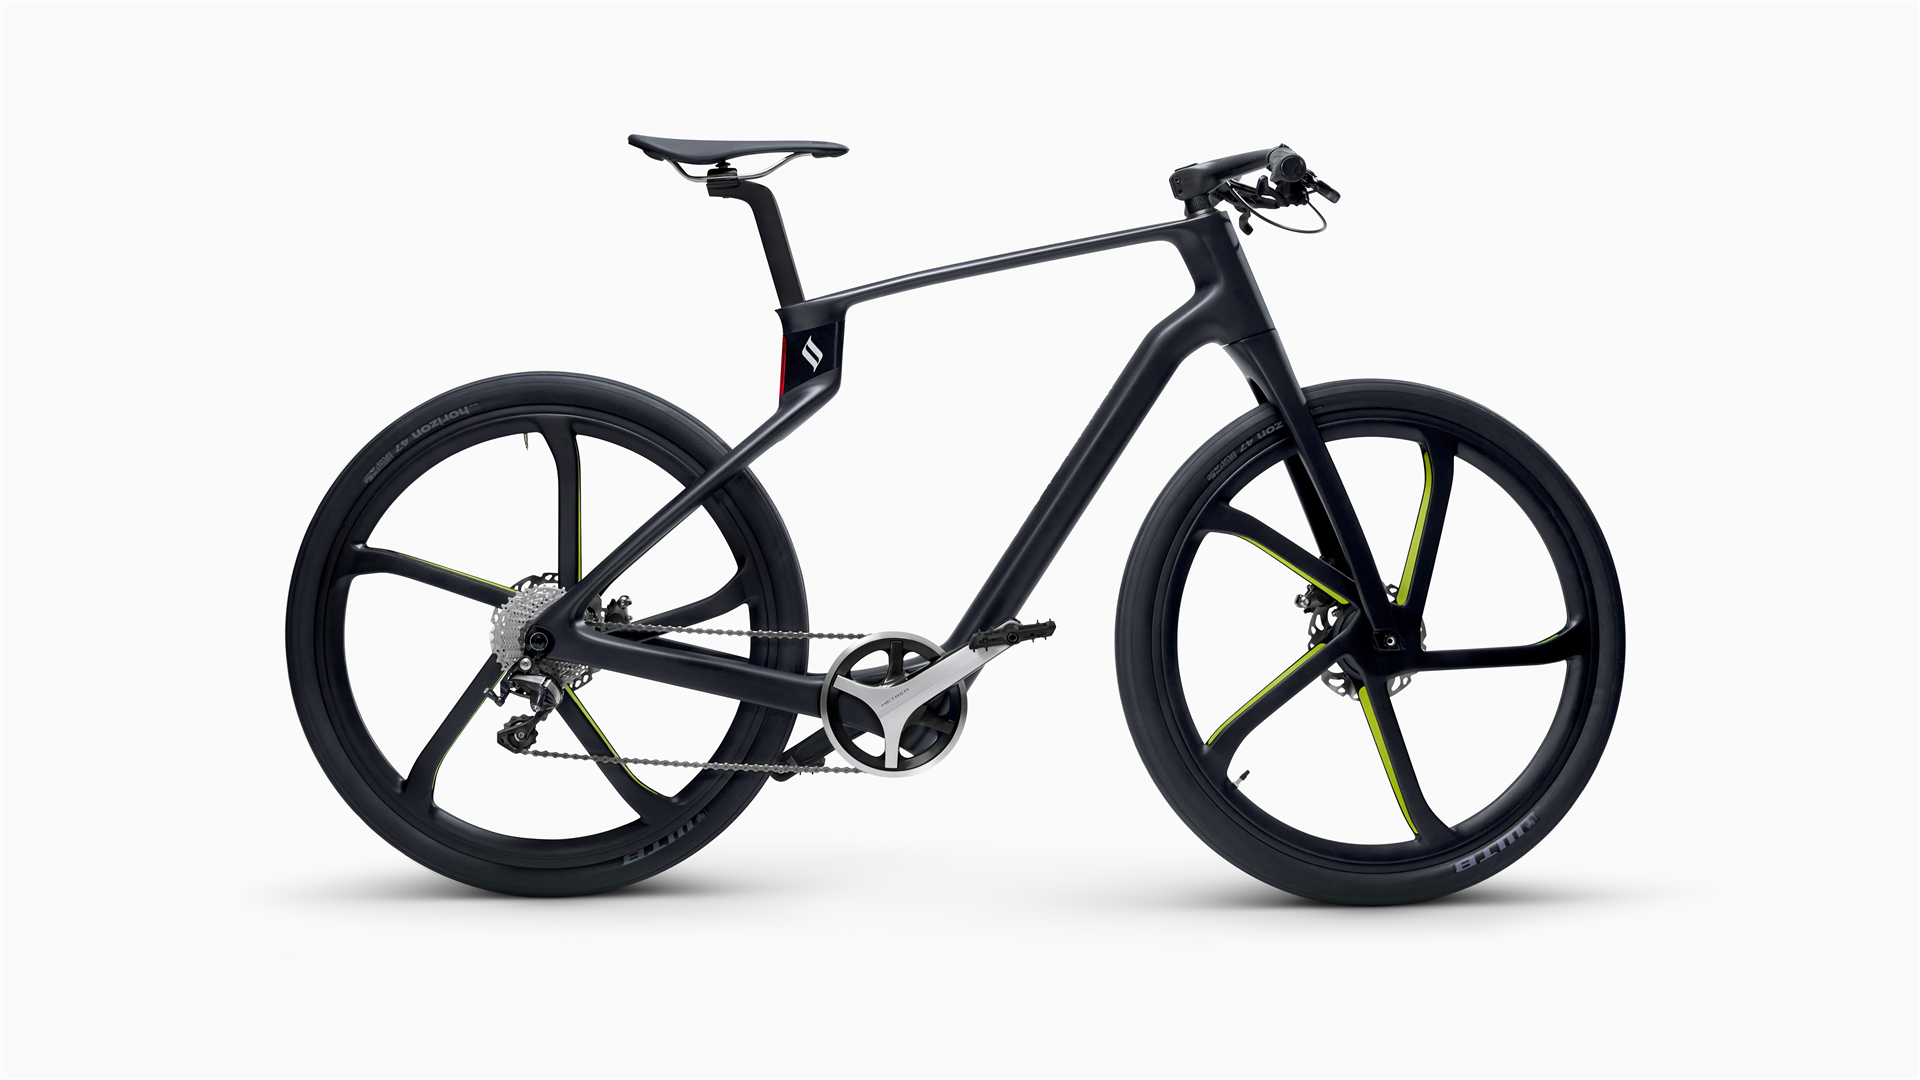 The Superstrata Terra in black with flat bars and big tires